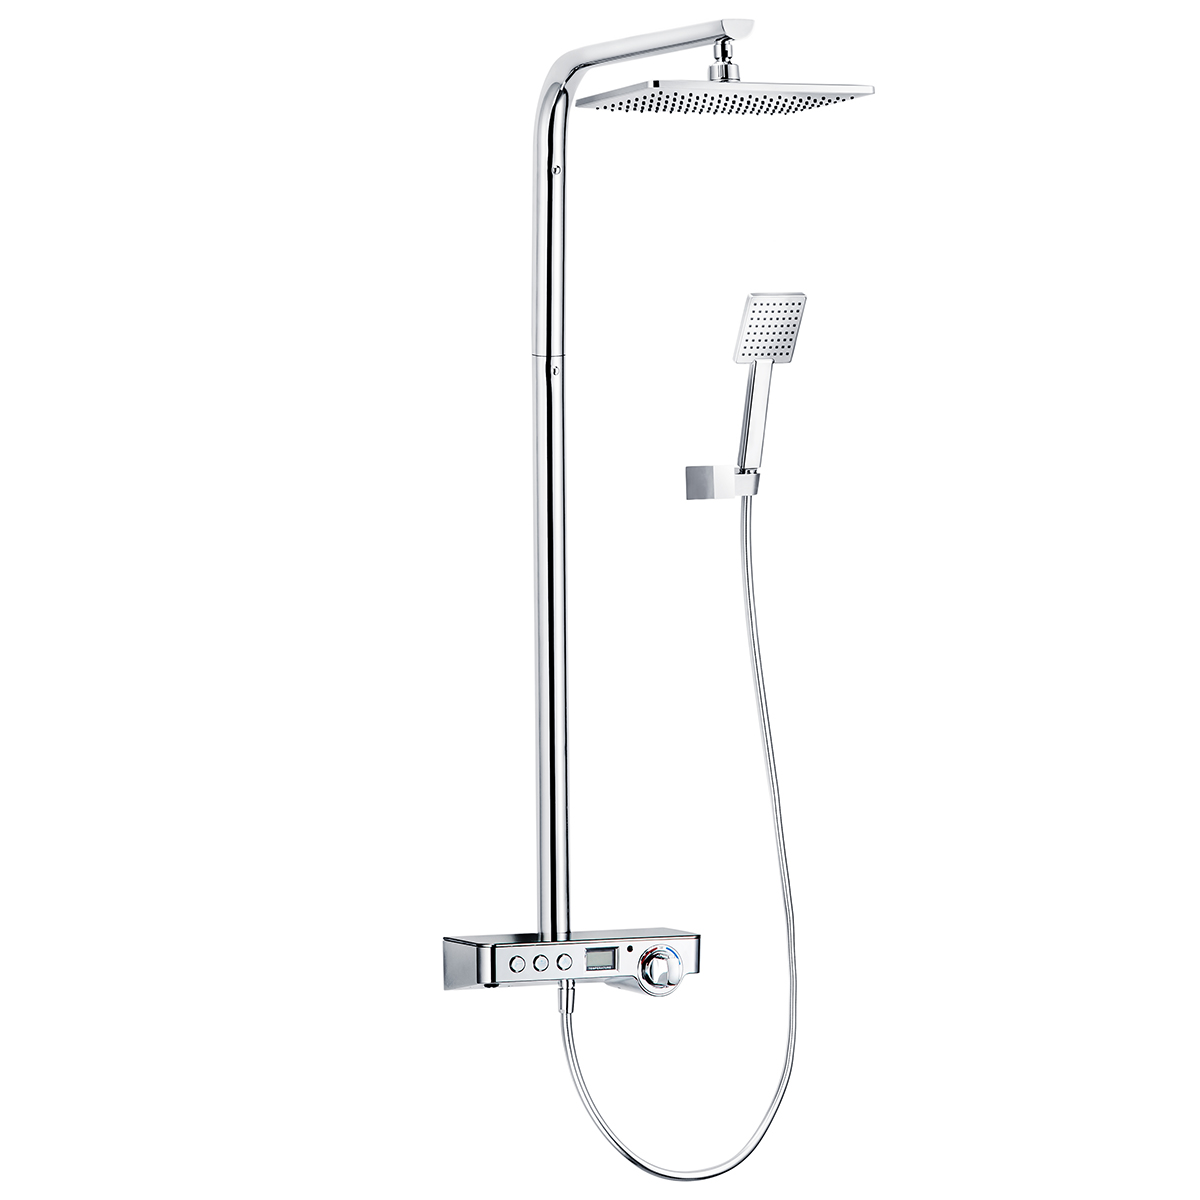 Bath shower set F1701 shower column